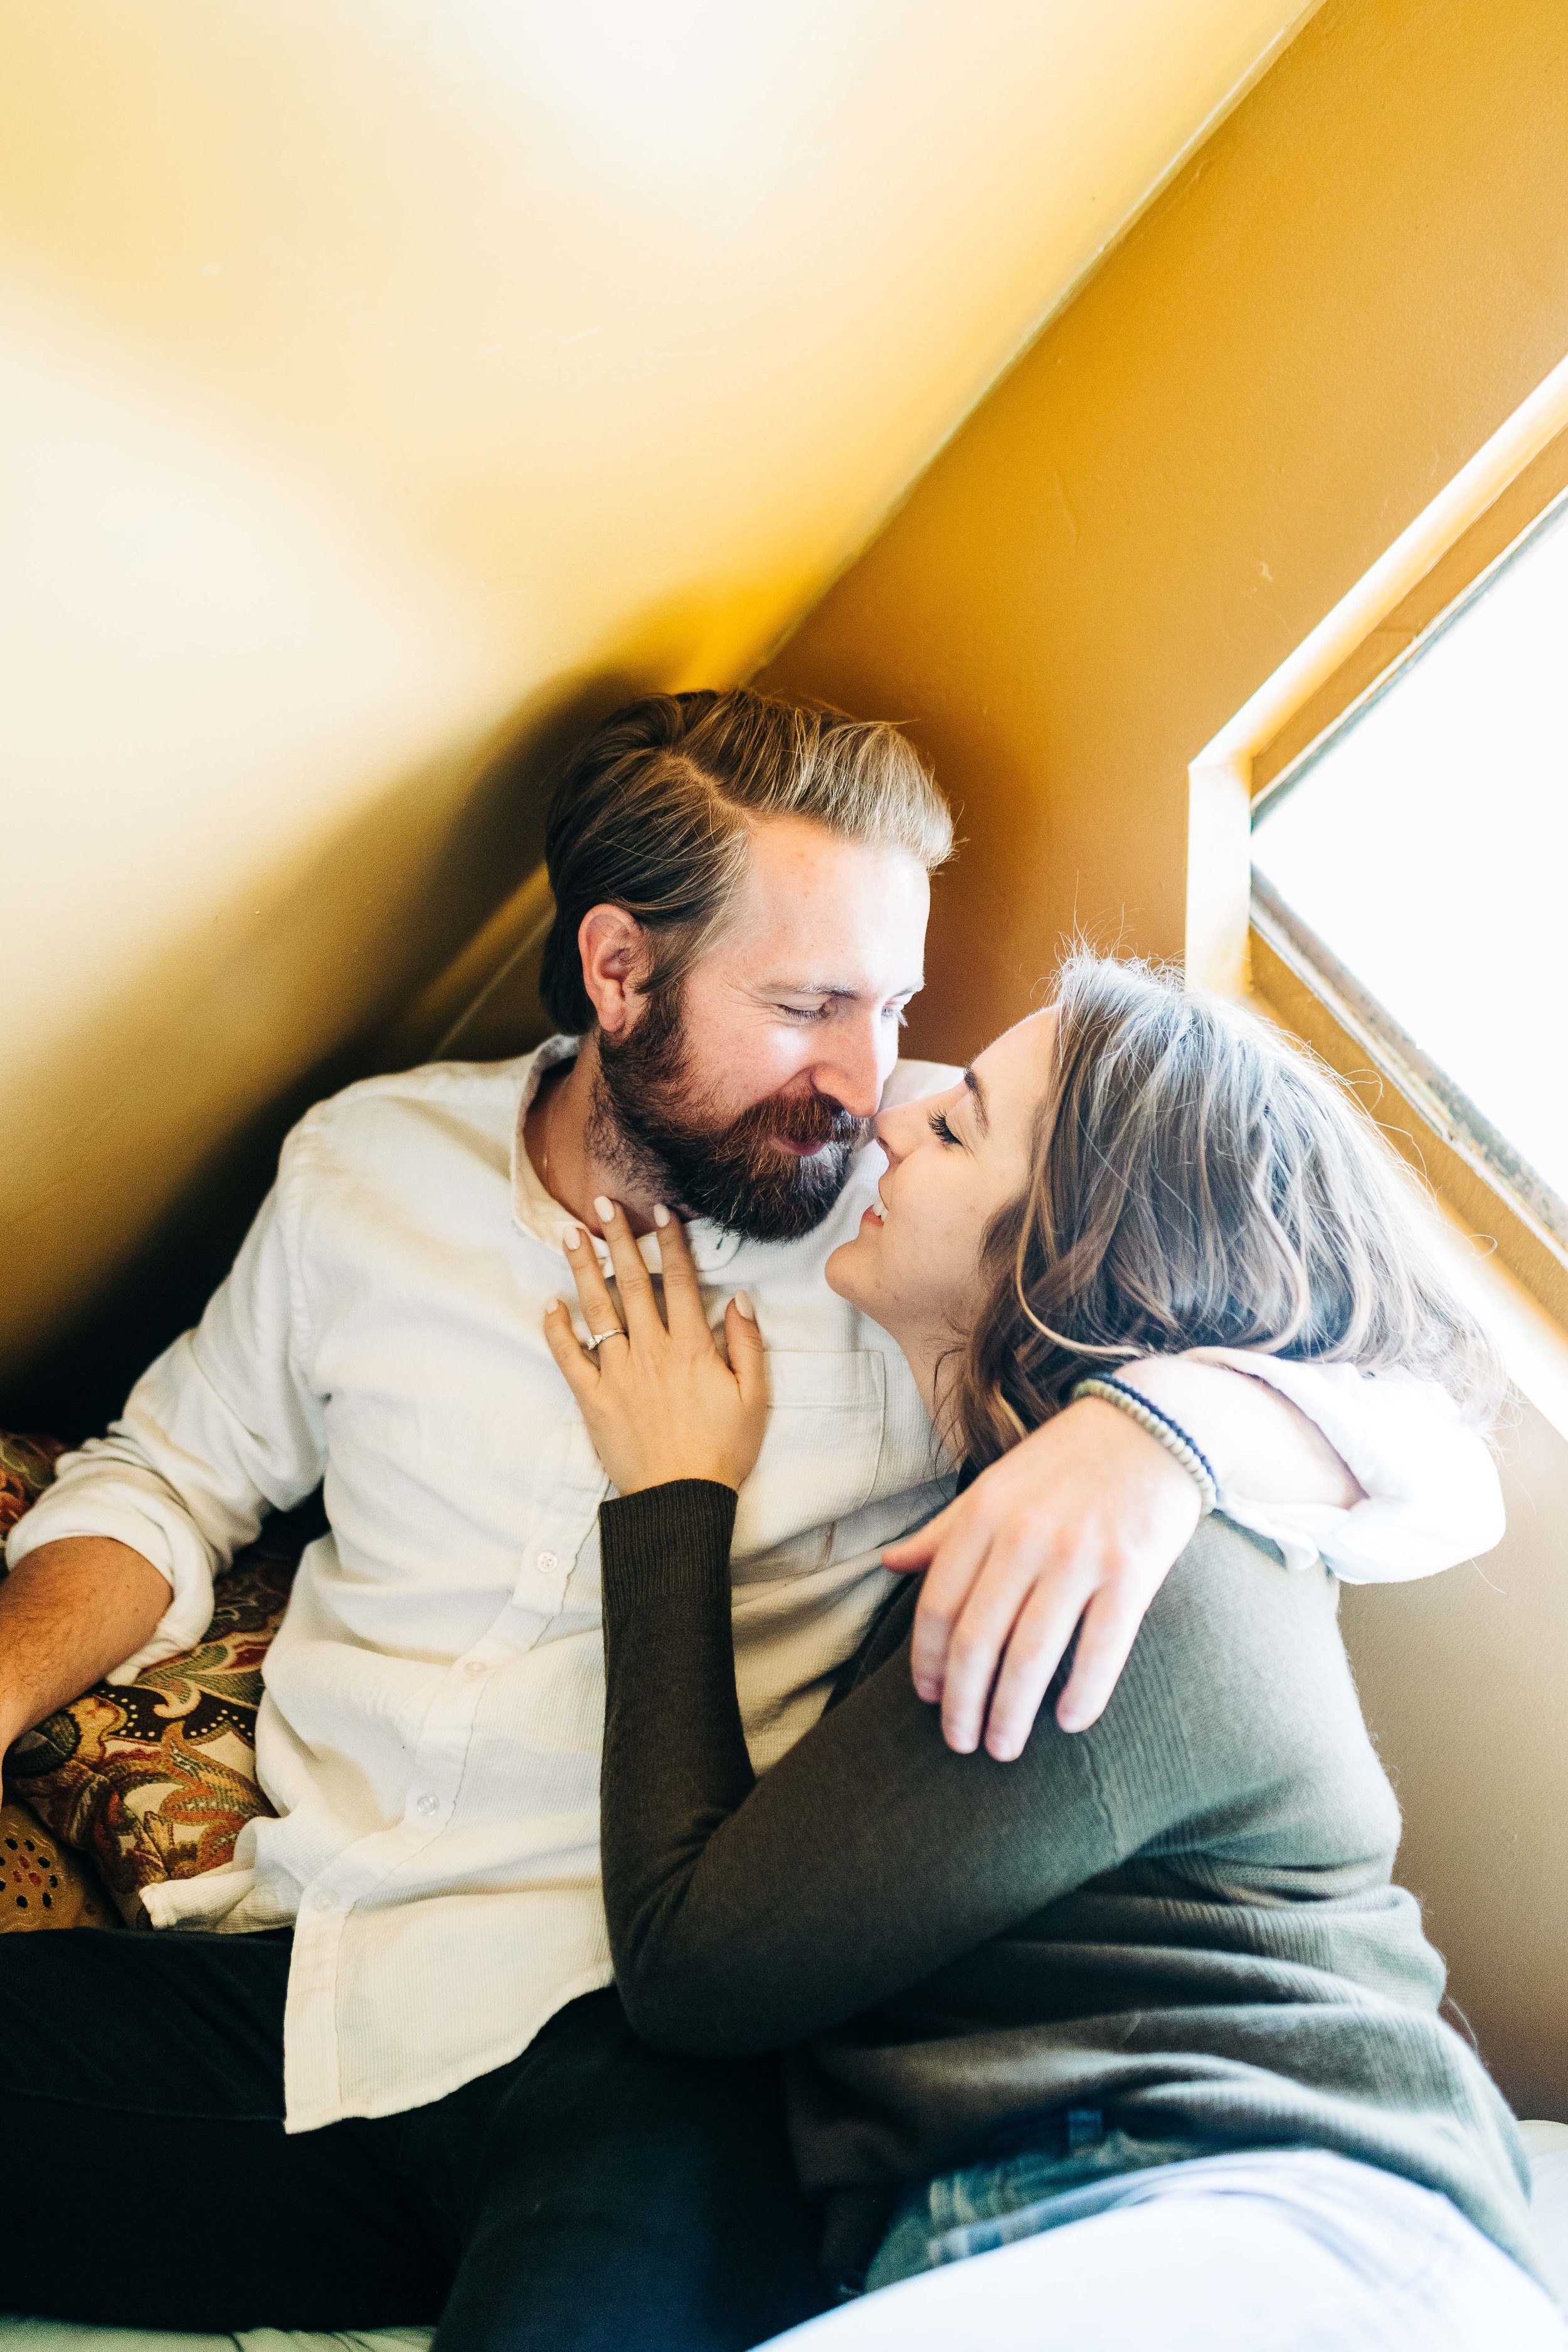 Hayley&Boomer_Joshua-Tree-Engagement-Photos_Tiny-Home_Southern-California-Wedding-Photographer_15